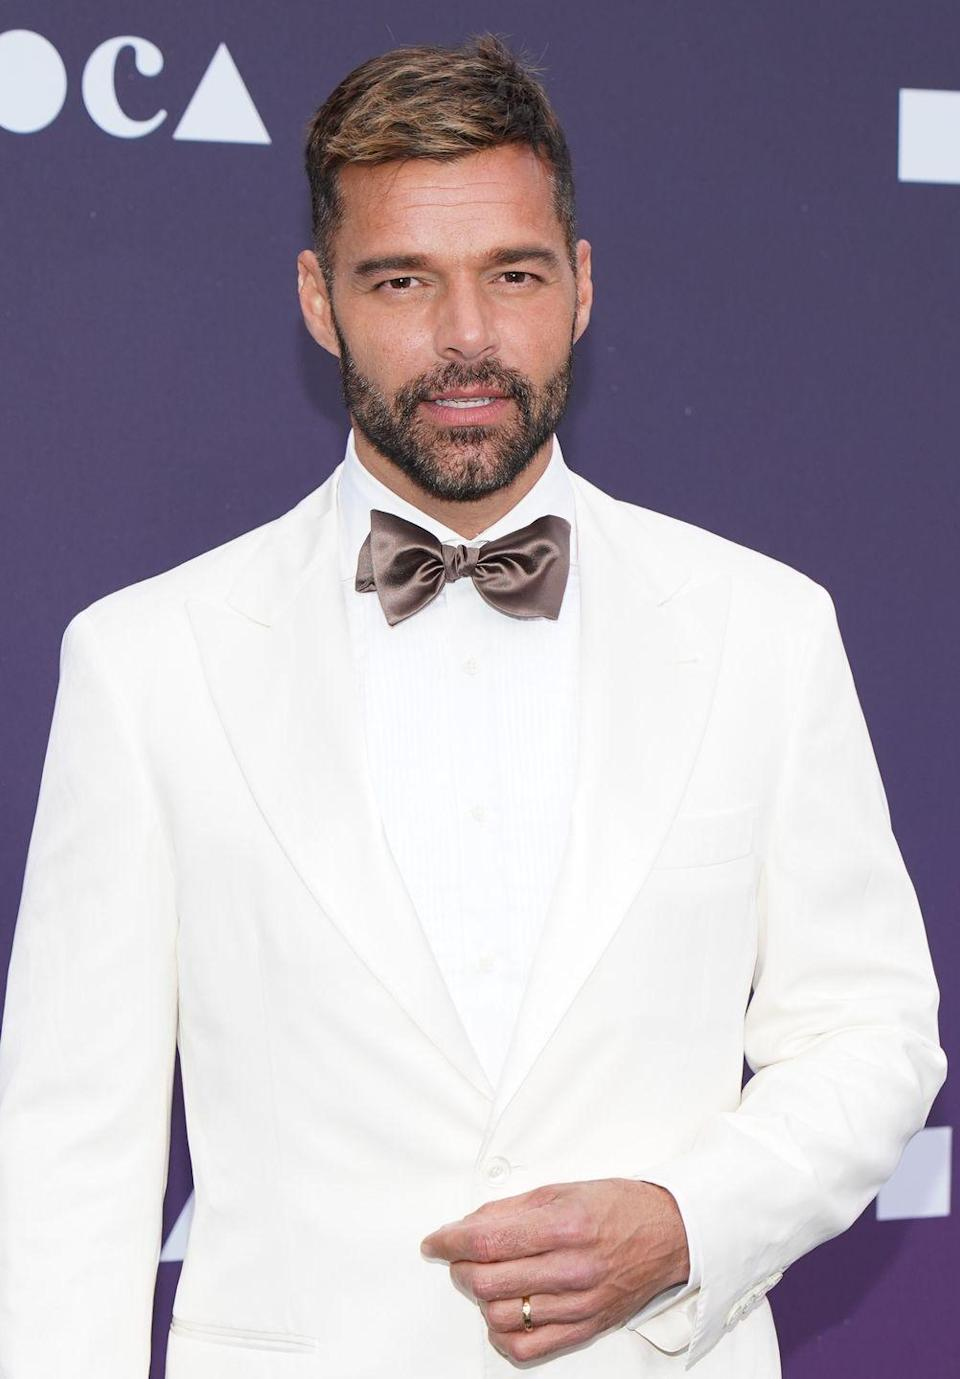 <p>As you can see, Ricky has kept it TIGHT. Besides remaining very good-looking (which, well done, mate), he's still releasing new music. He's dabbled in acting too, recently starring in the second season of <em>American Crime Story.</em><br></p>